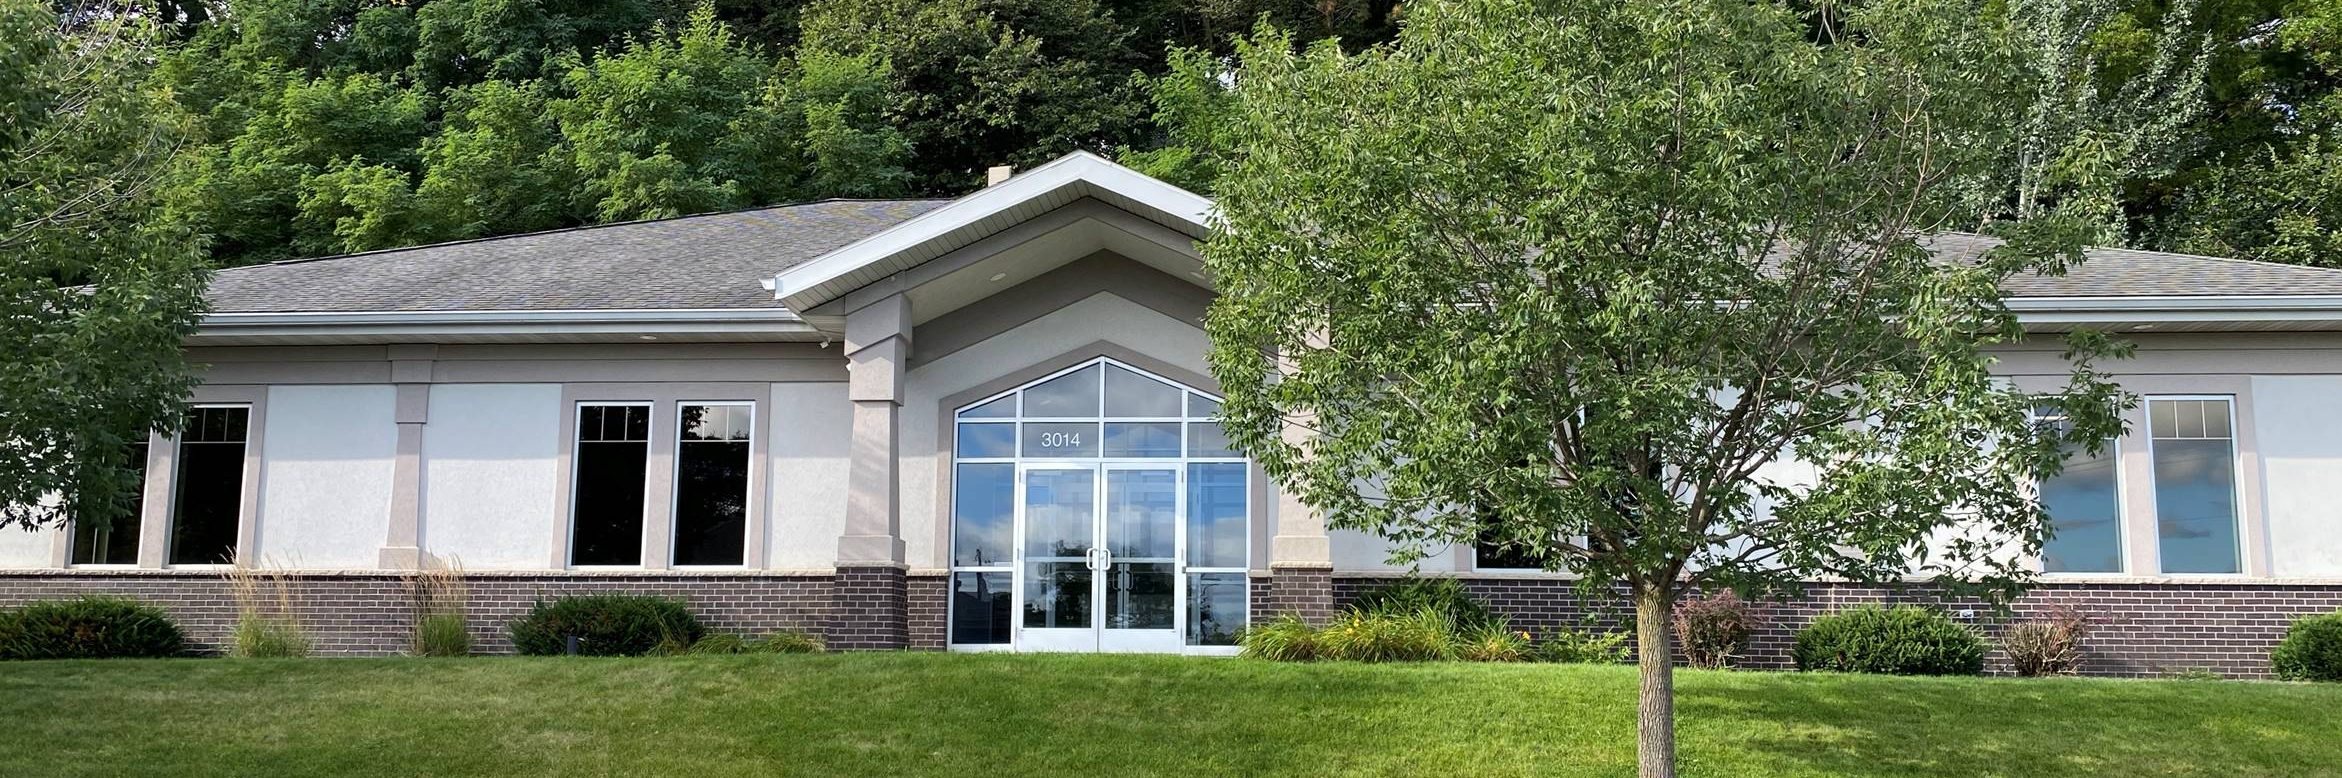 rochester mn personal injury attorneys